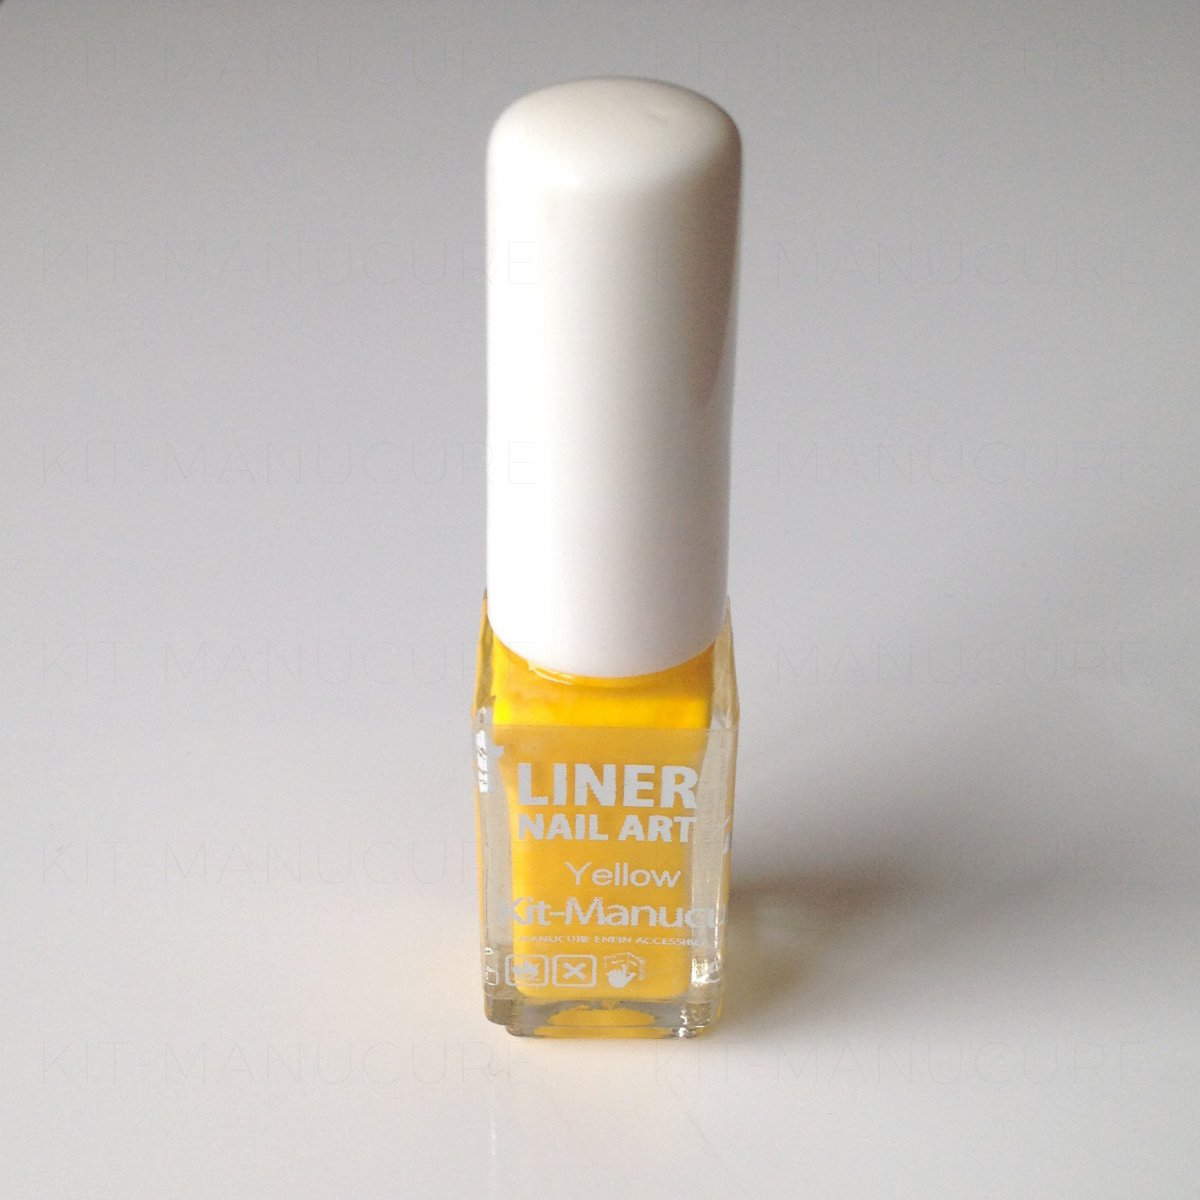 https://www.kit-manucure.com/664-thickbox_default/liner-nail-art-jaune.jpg